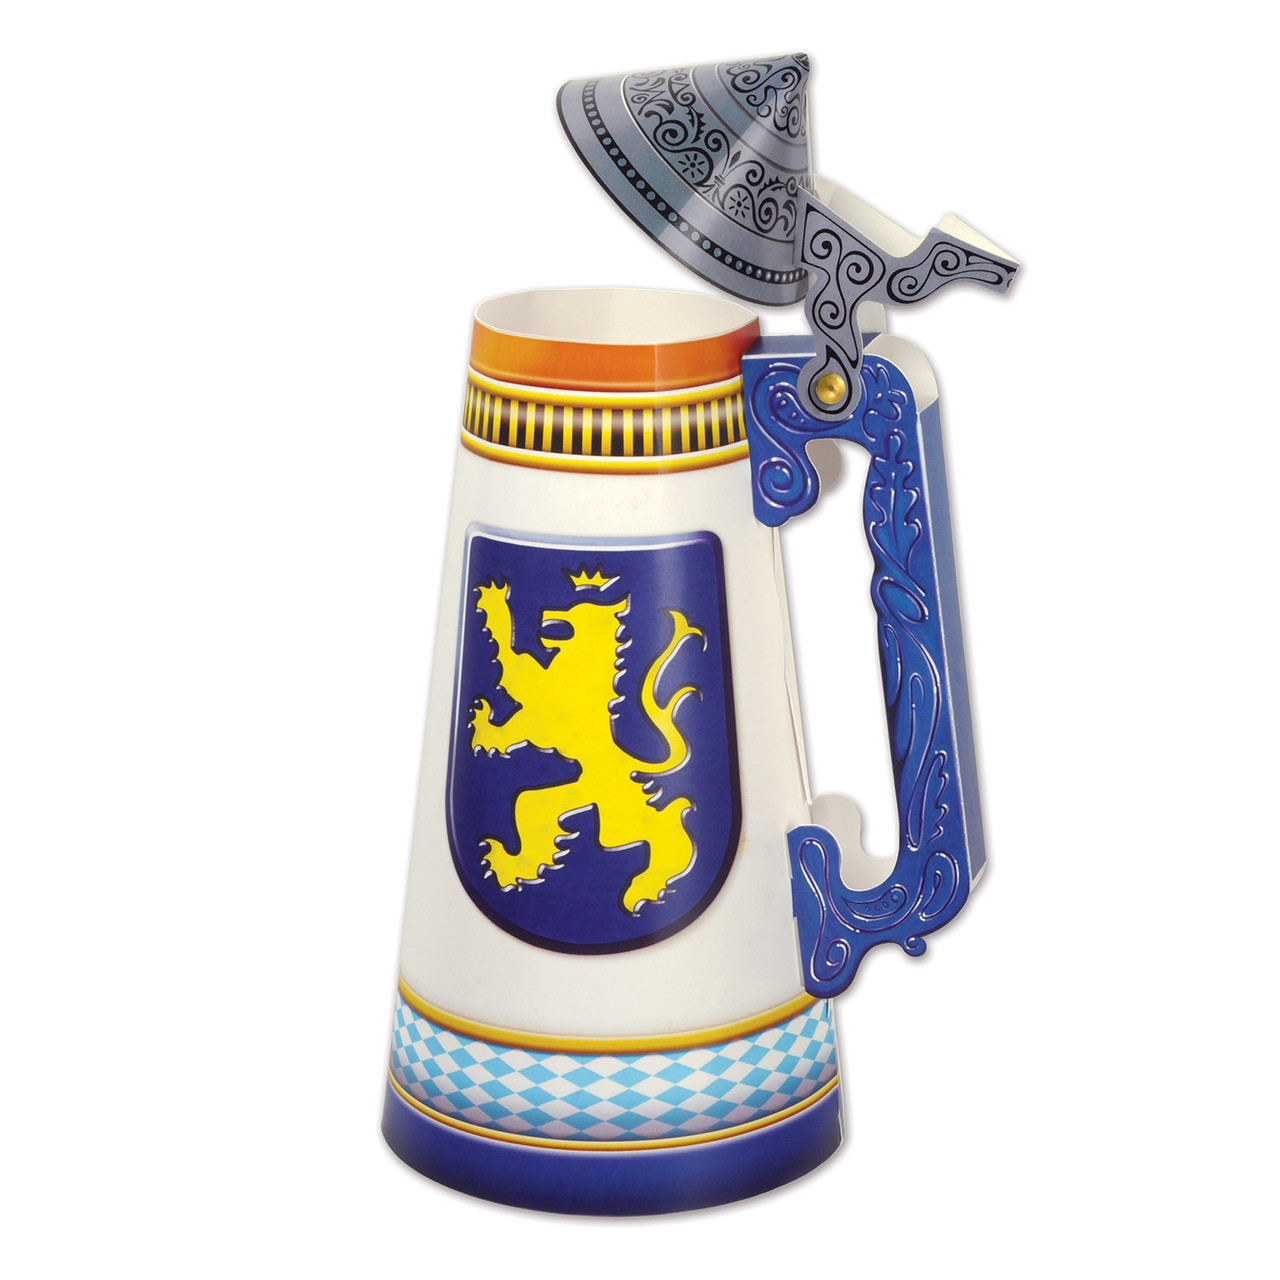 Beer Stein Paper Cut Out Centerpiece 3D 11.75in tall